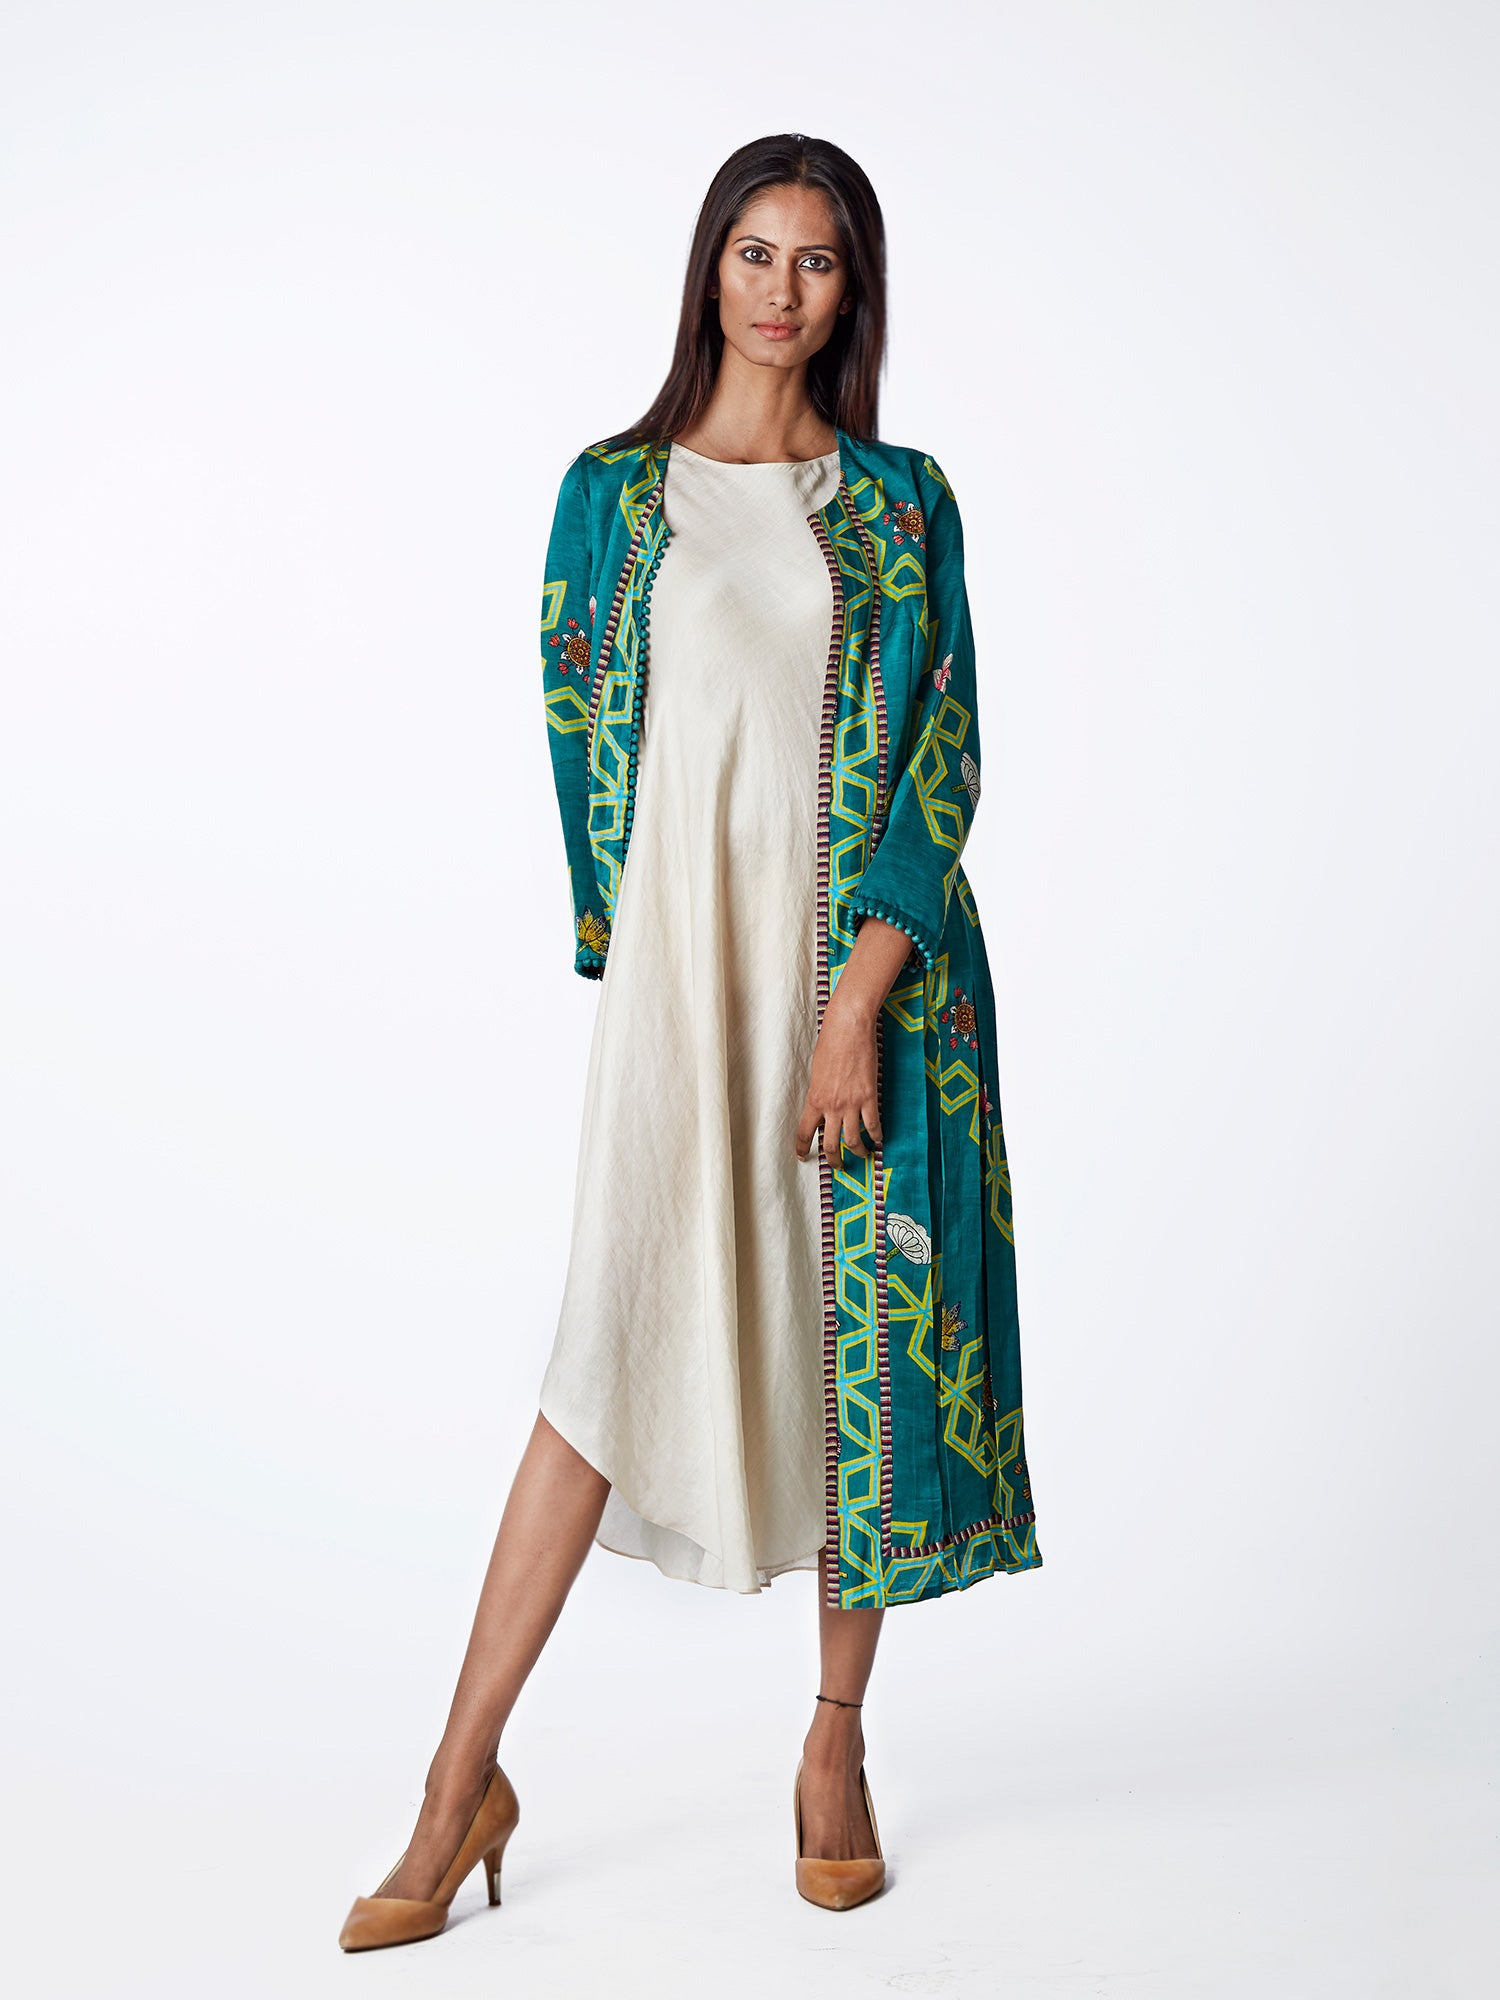 JACKET DRESS, LONG DRESS, SHIFT DRESS, PRINTED, EMBROIDERED, INDIAN APPAREL, SWATI VIJAIVARGIE